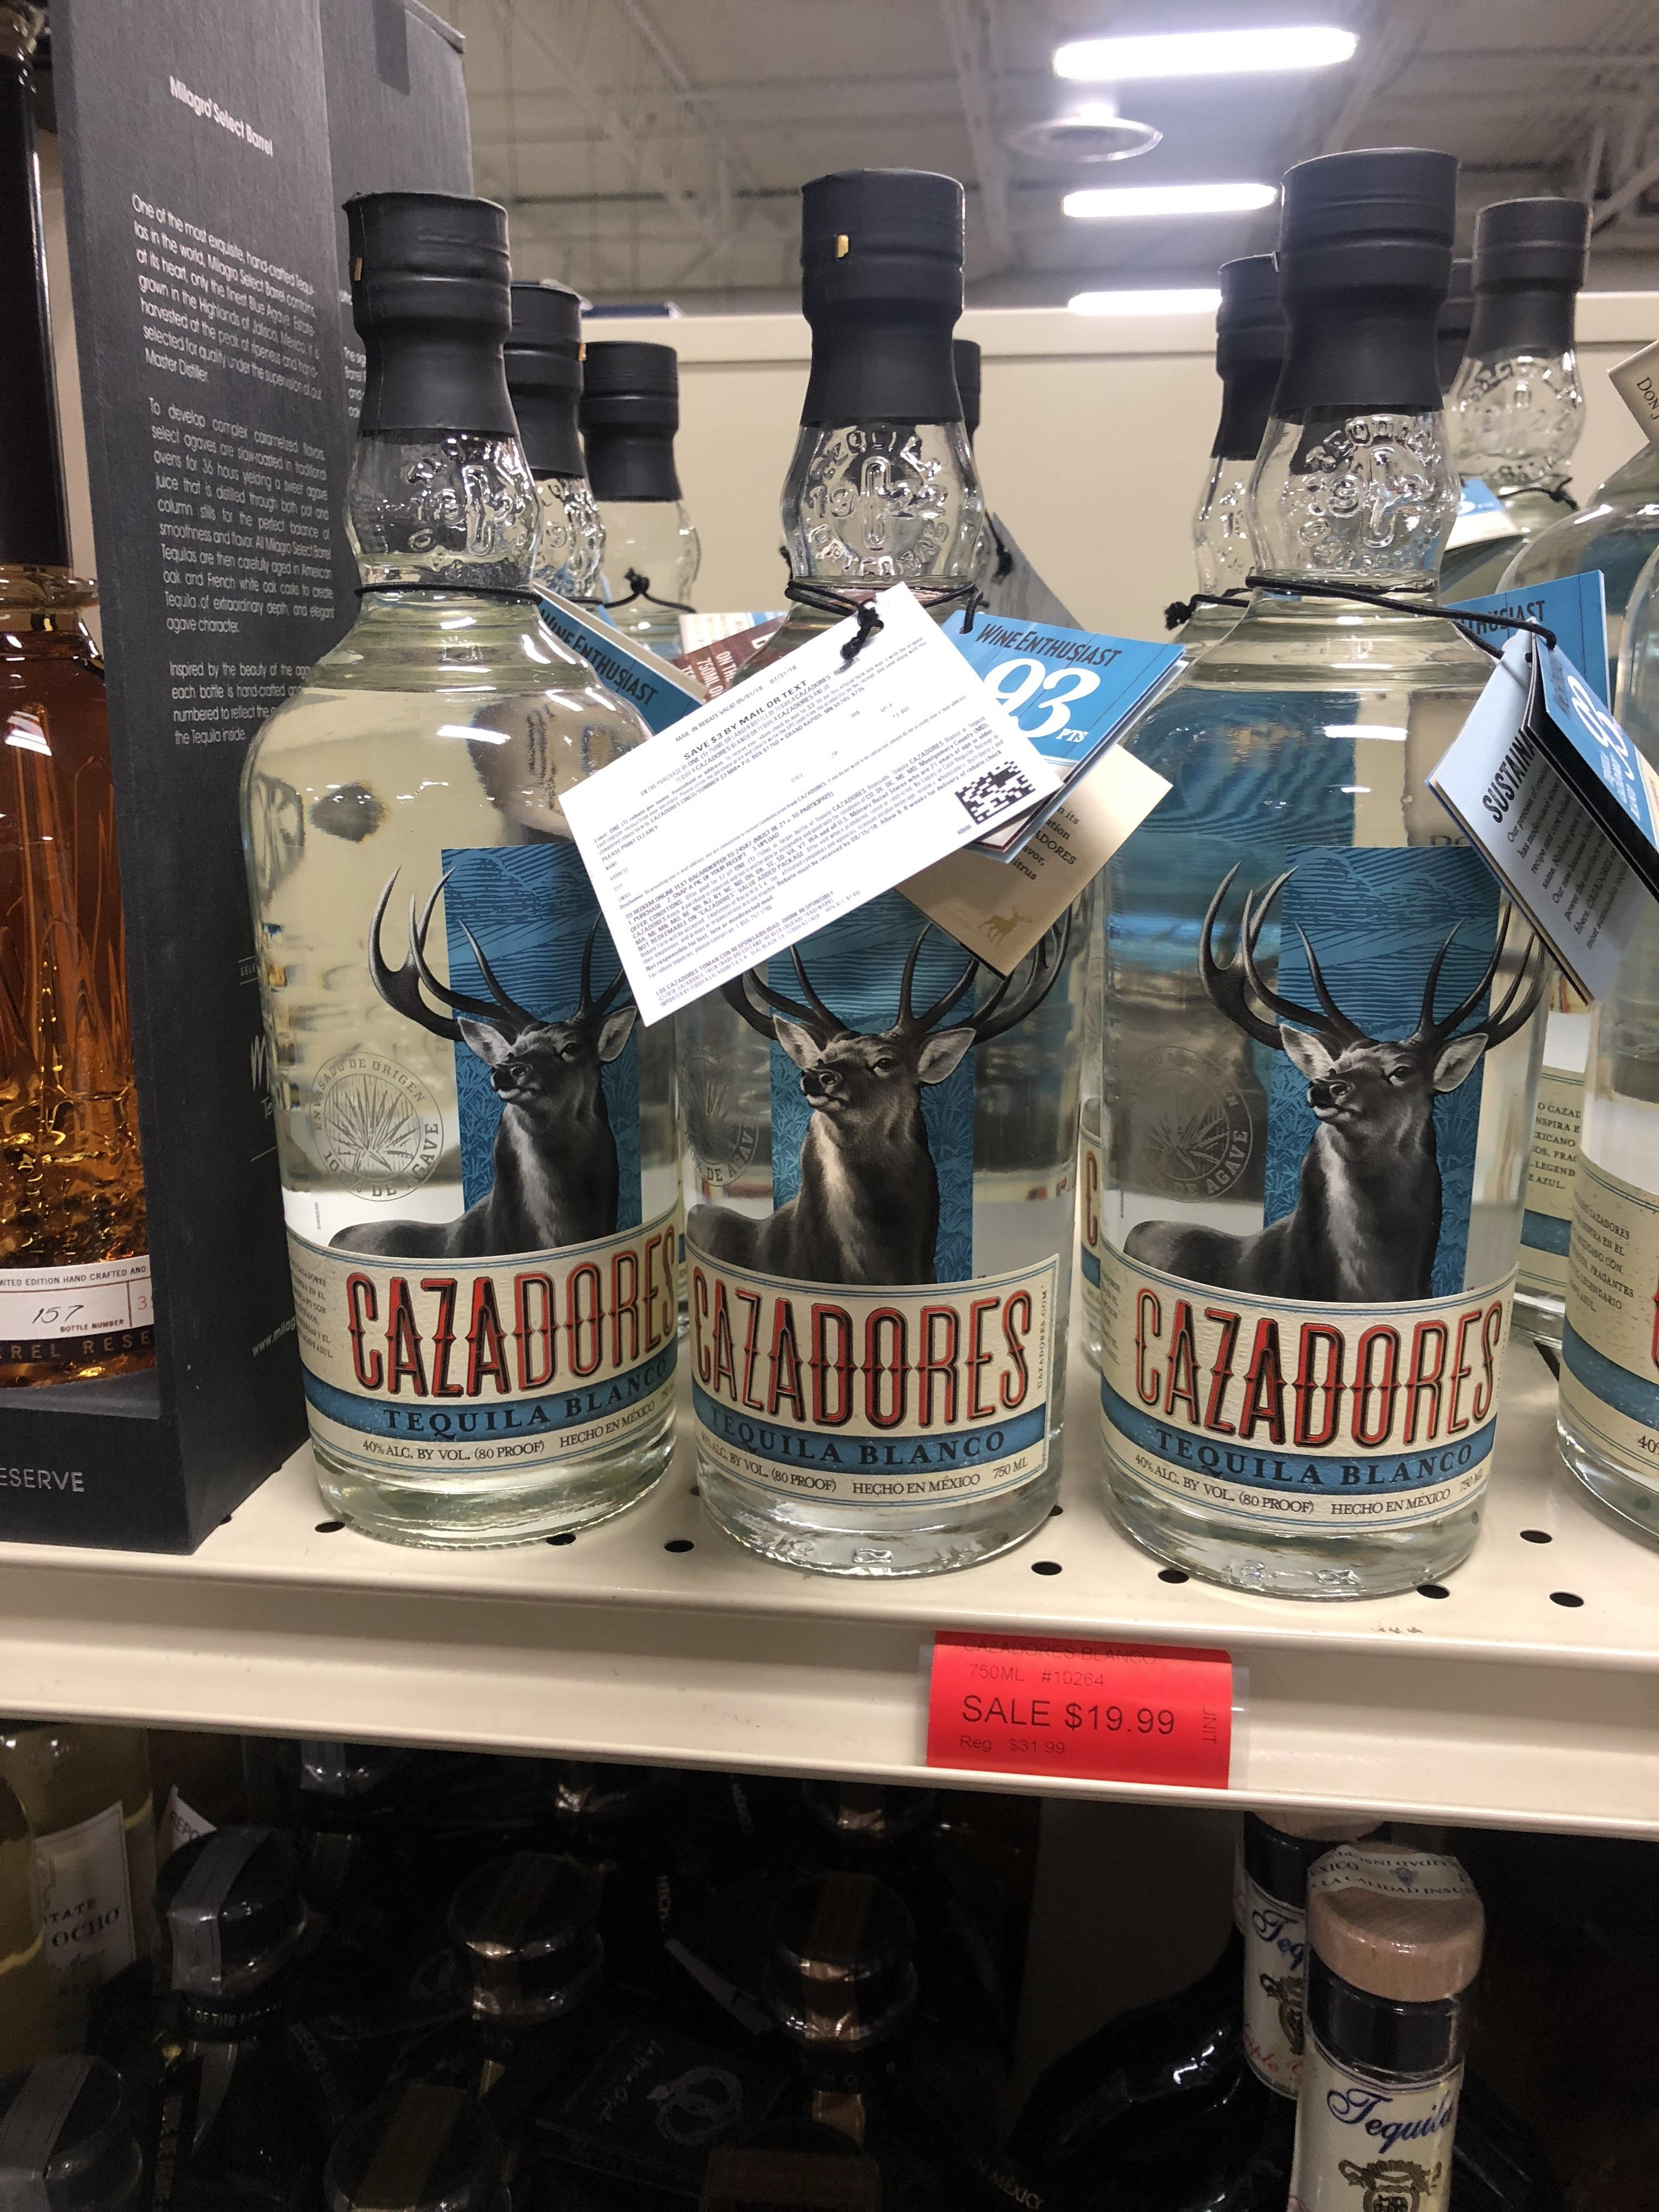 new to quality tequila